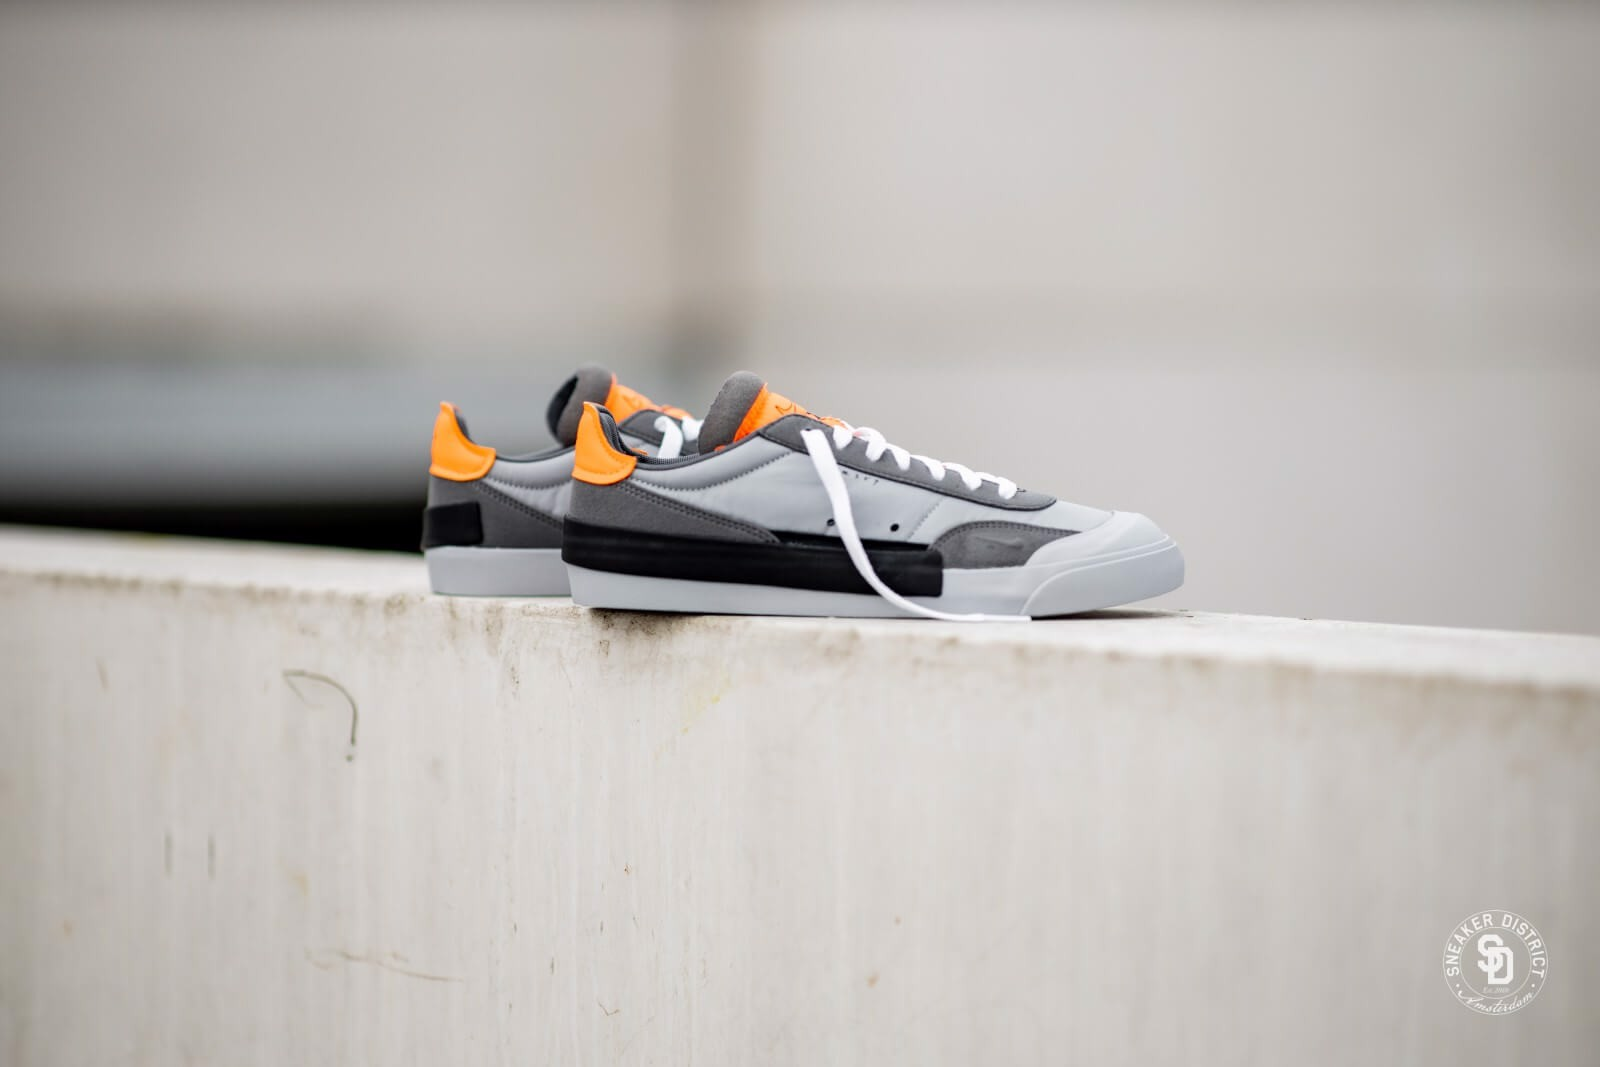 Nike Drop Type LX 'Wolf Grey And Orange' AV6697-002